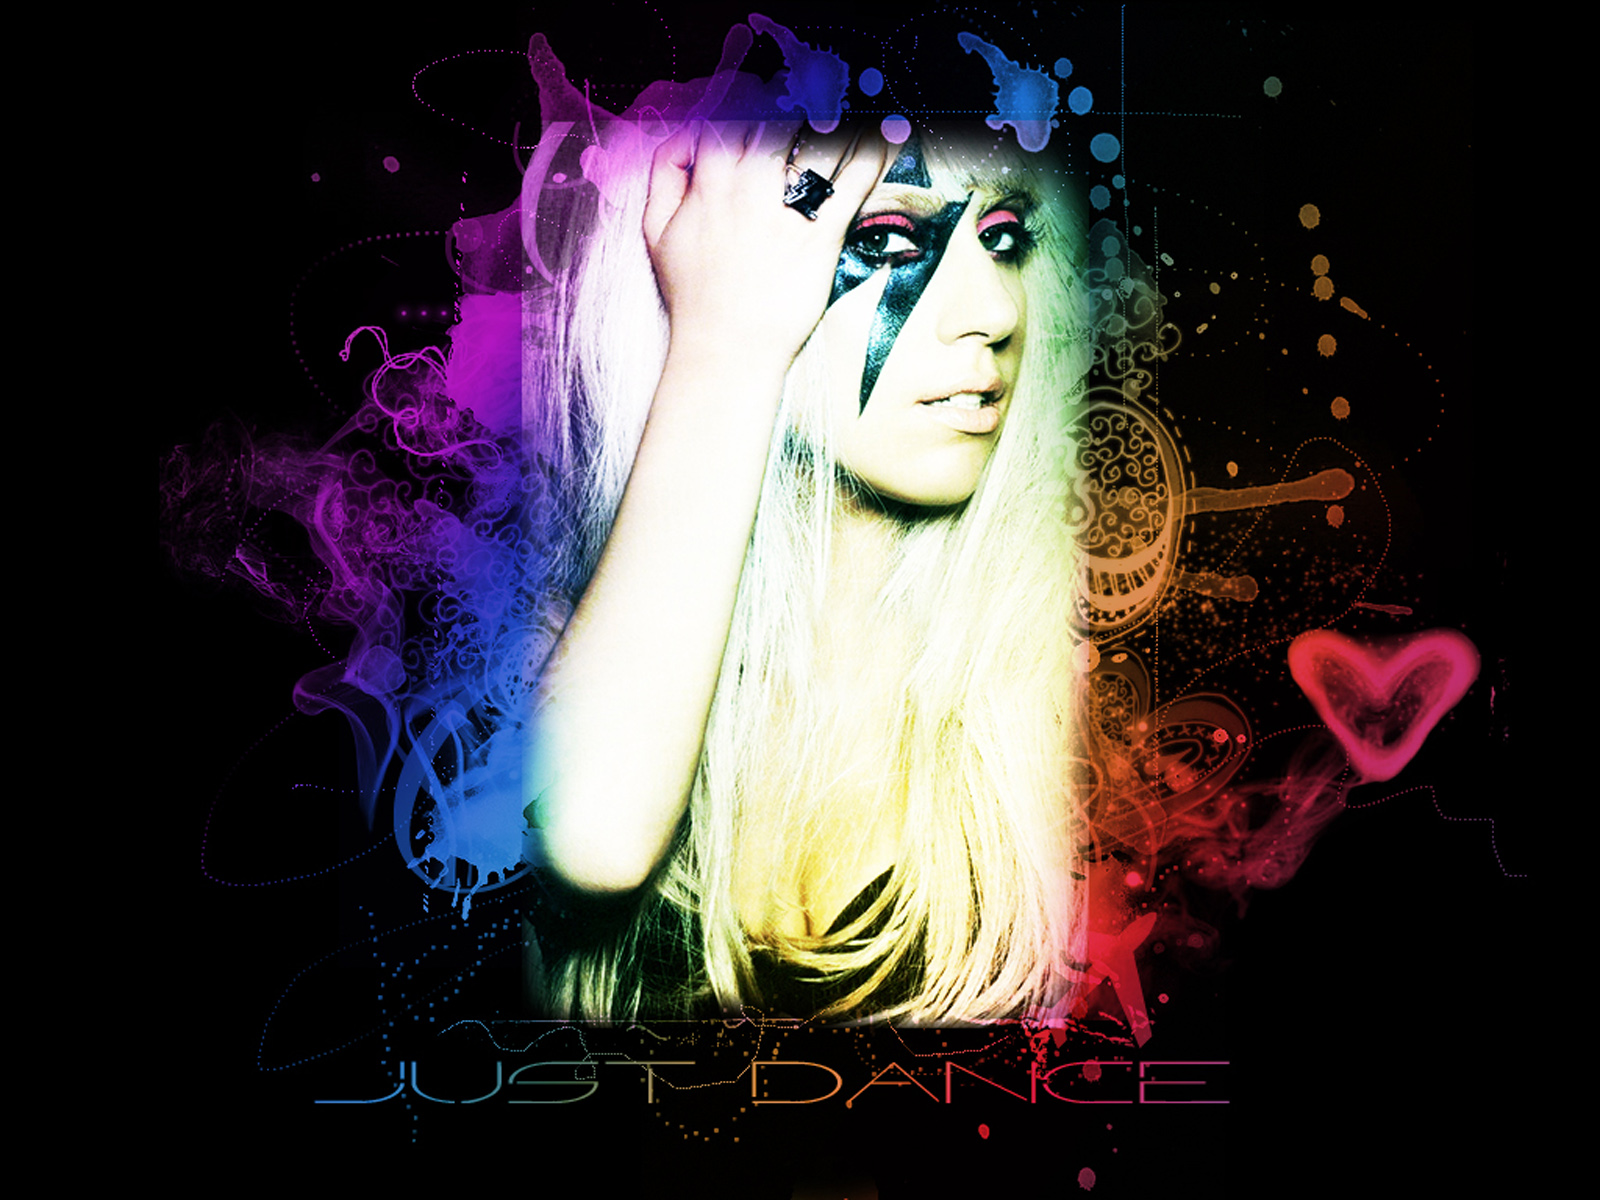 Lady gaga, on just dance album